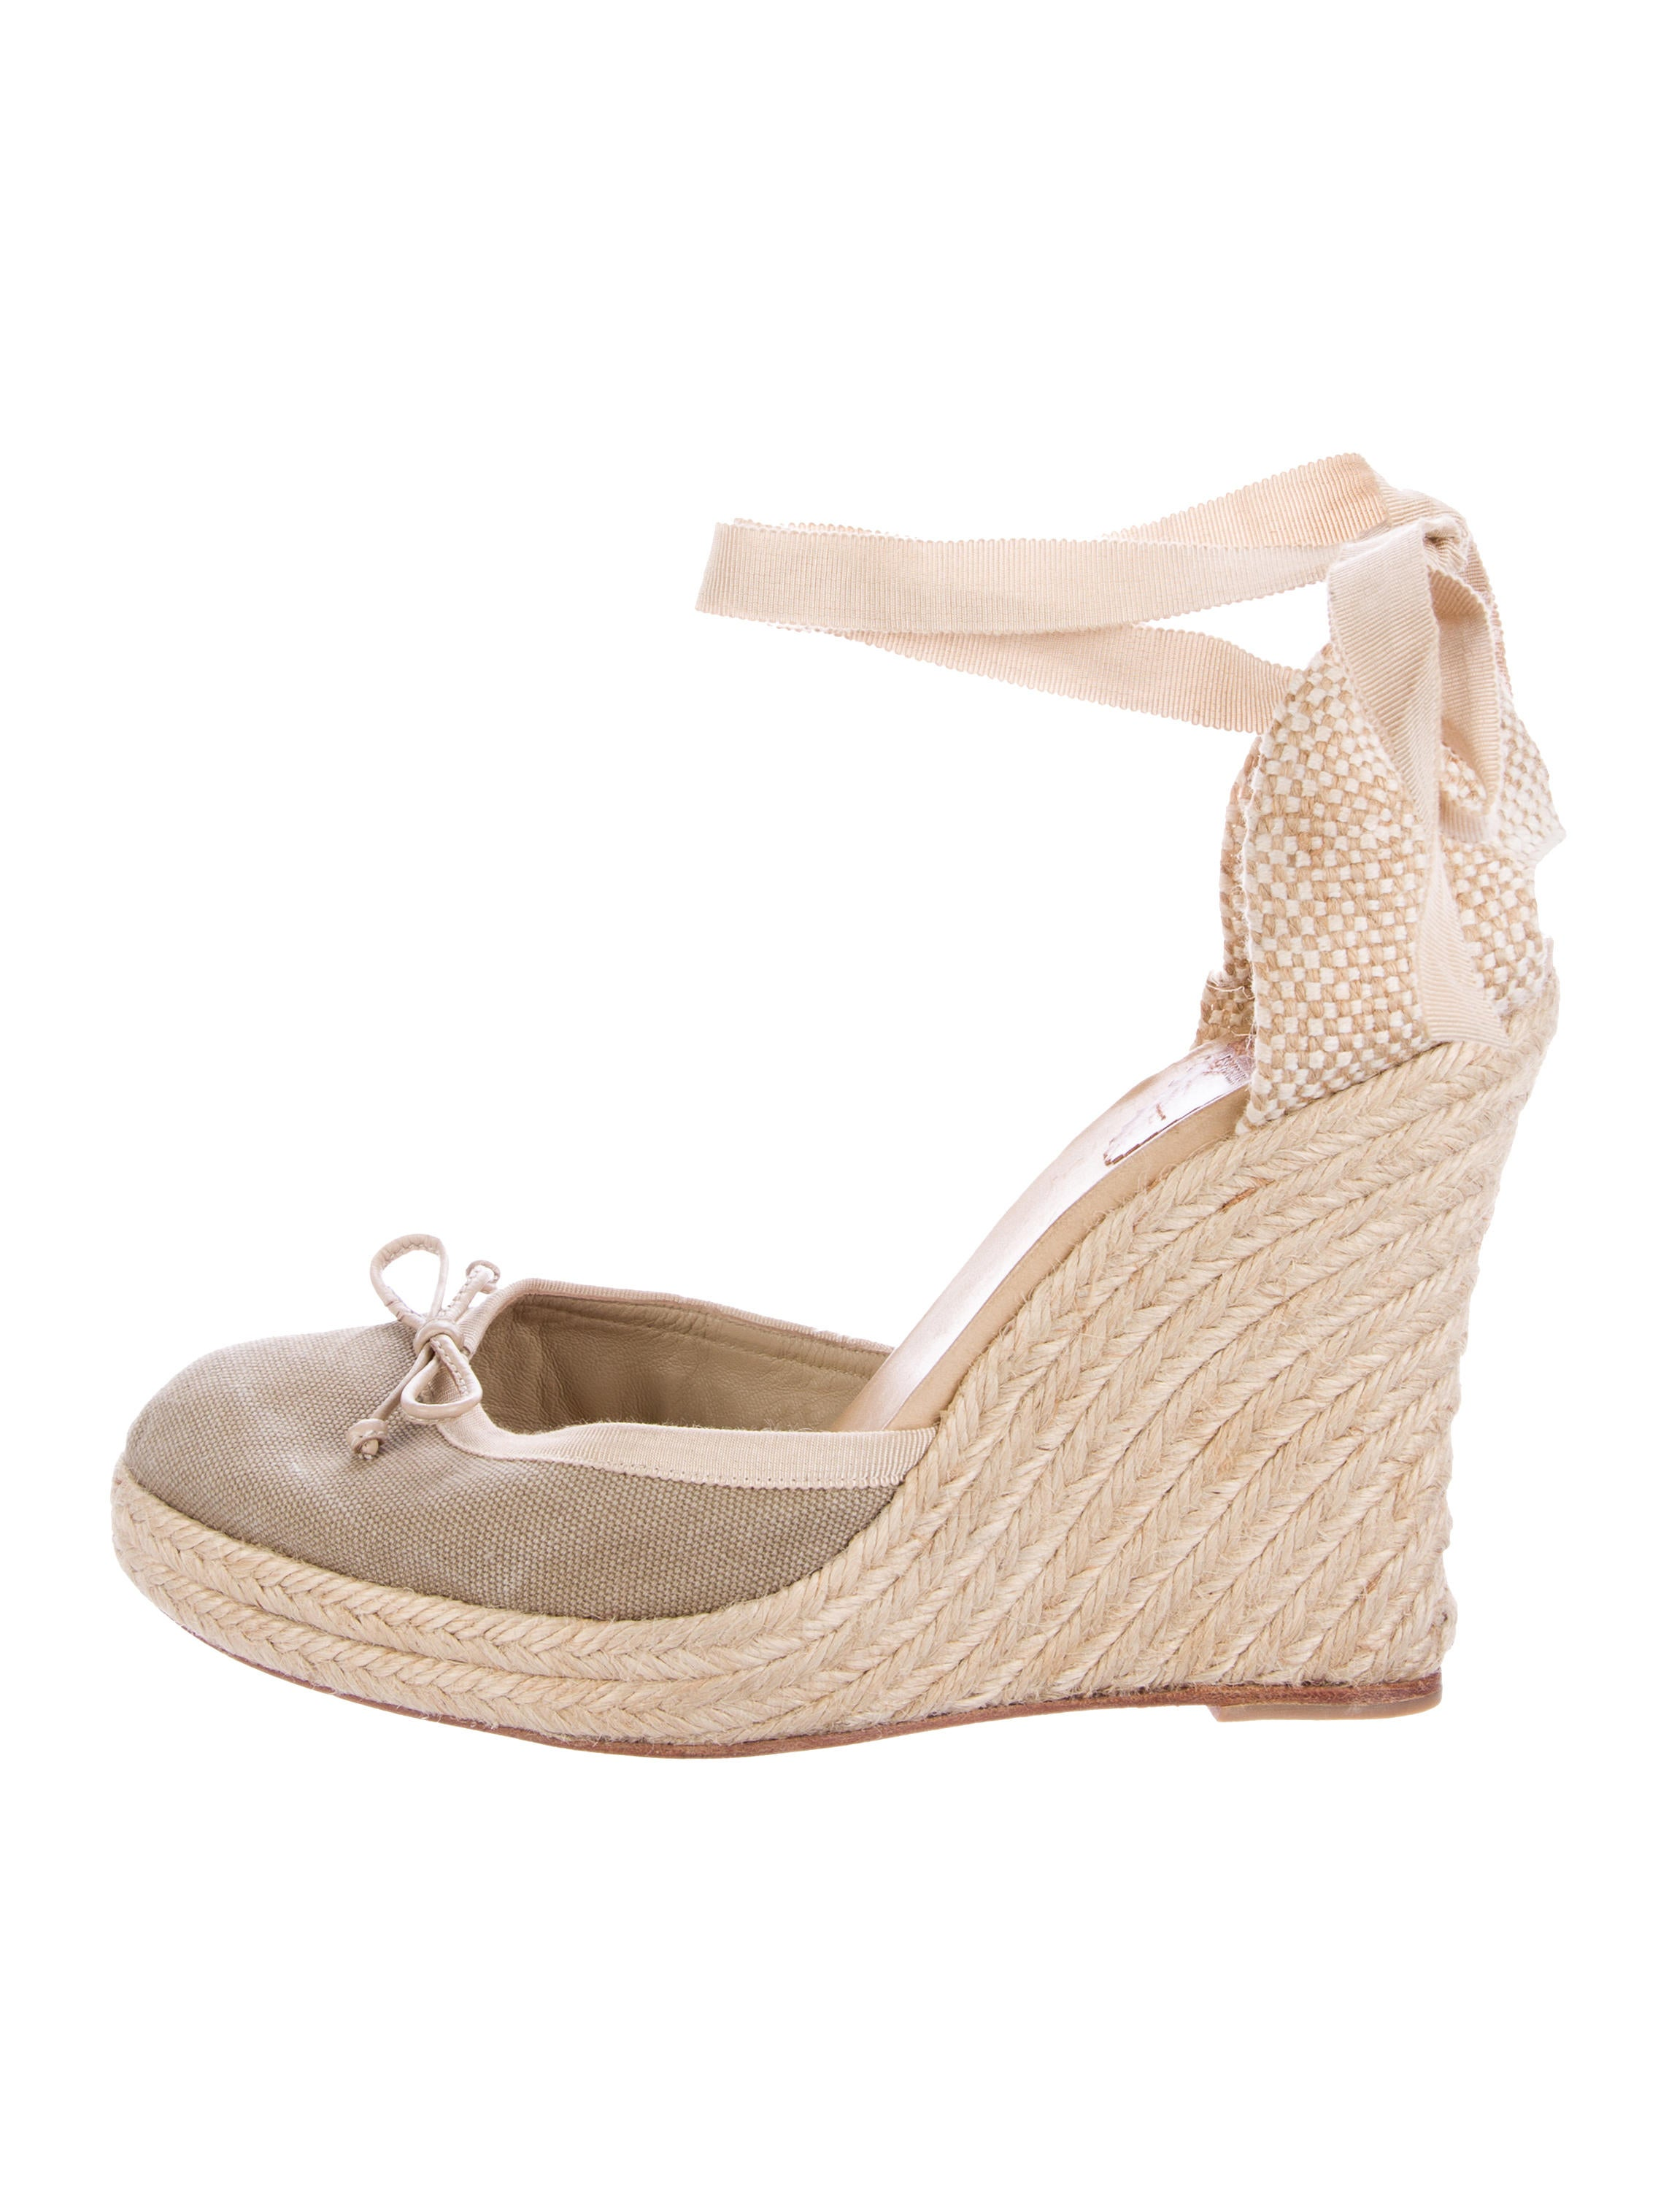 christian louboutin canvas espadrille wedges shoes